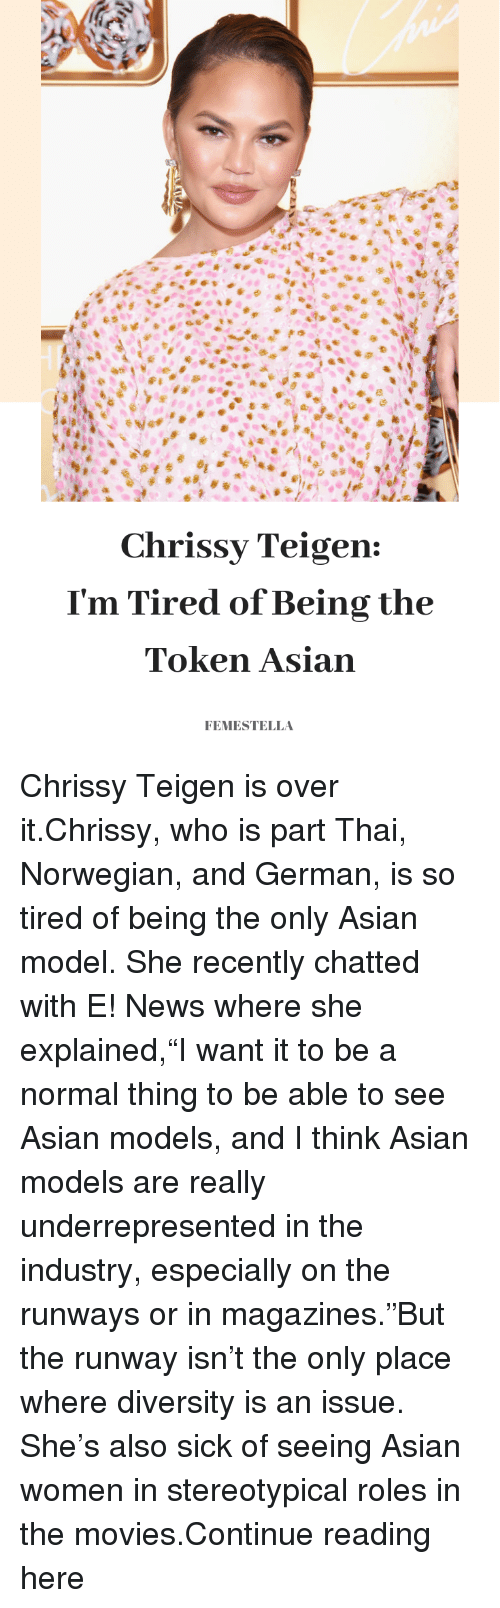 """asian models: Chrissy Teigen:  I'm Tired ofBeing the  Token Asian  FEMESTELLA Chrissy Teigen is over it.Chrissy, who is part Thai, Norwegian, and German, is so tired of being the only Asian model. She recently chatted with E! News where she explained,""""I want it to be a normal thing to be able to see Asian models, and I think Asian models are really underrepresented in the industry, especially on the runways or in magazines.""""But the runway isn't the only place where diversity is an issue. She's also sick of seeing Asian women in stereotypical roles in the movies.Continue reading here"""